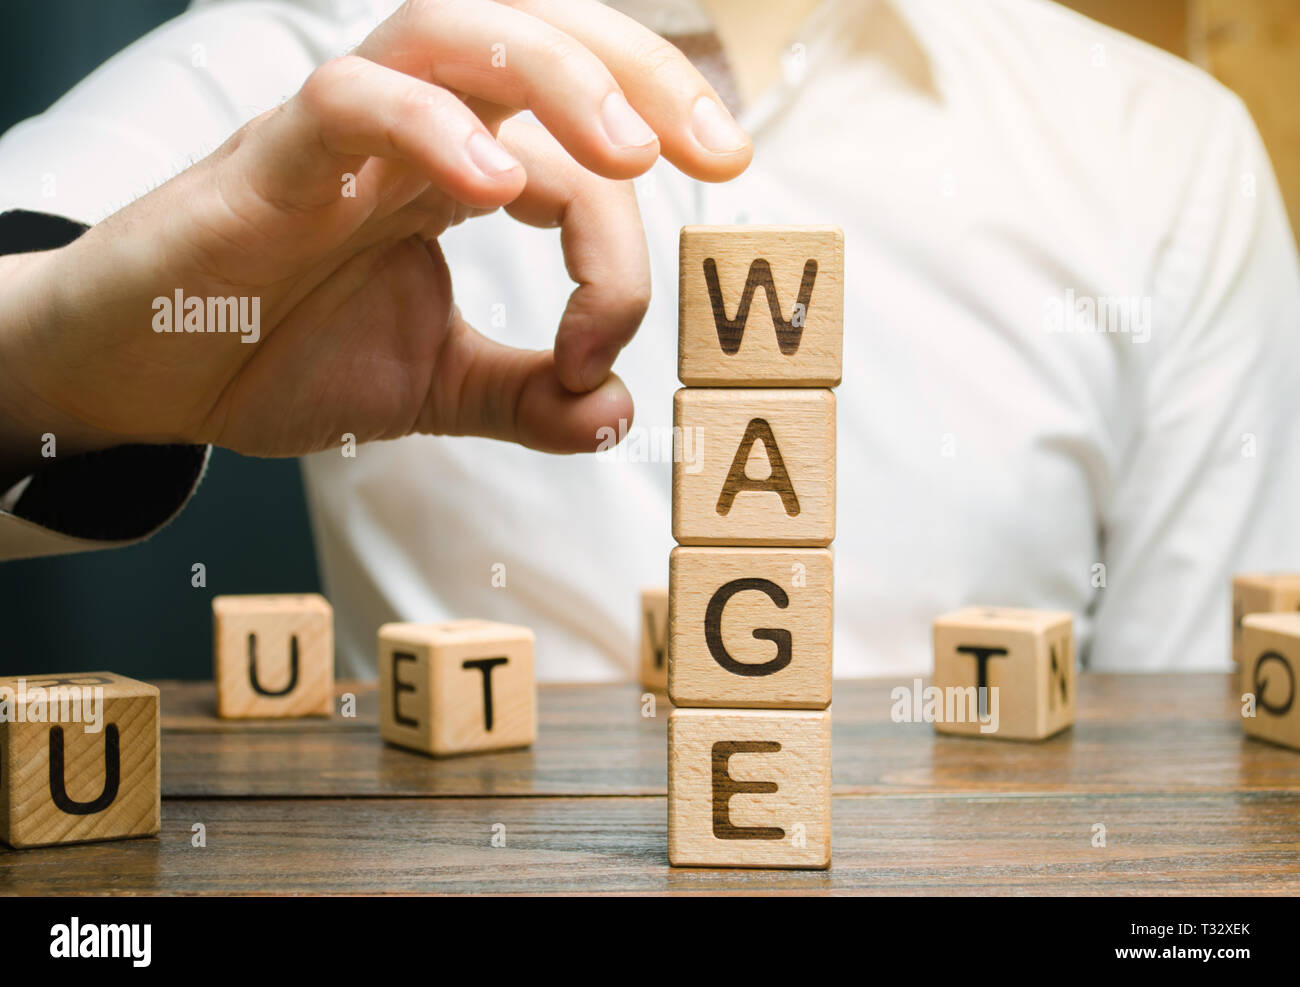 Hand of a businessman removes wooden blocks with the word Wage. Salary reduction concept. Wages cuts. The concept of limited profit. Lack of money and Stock Photo